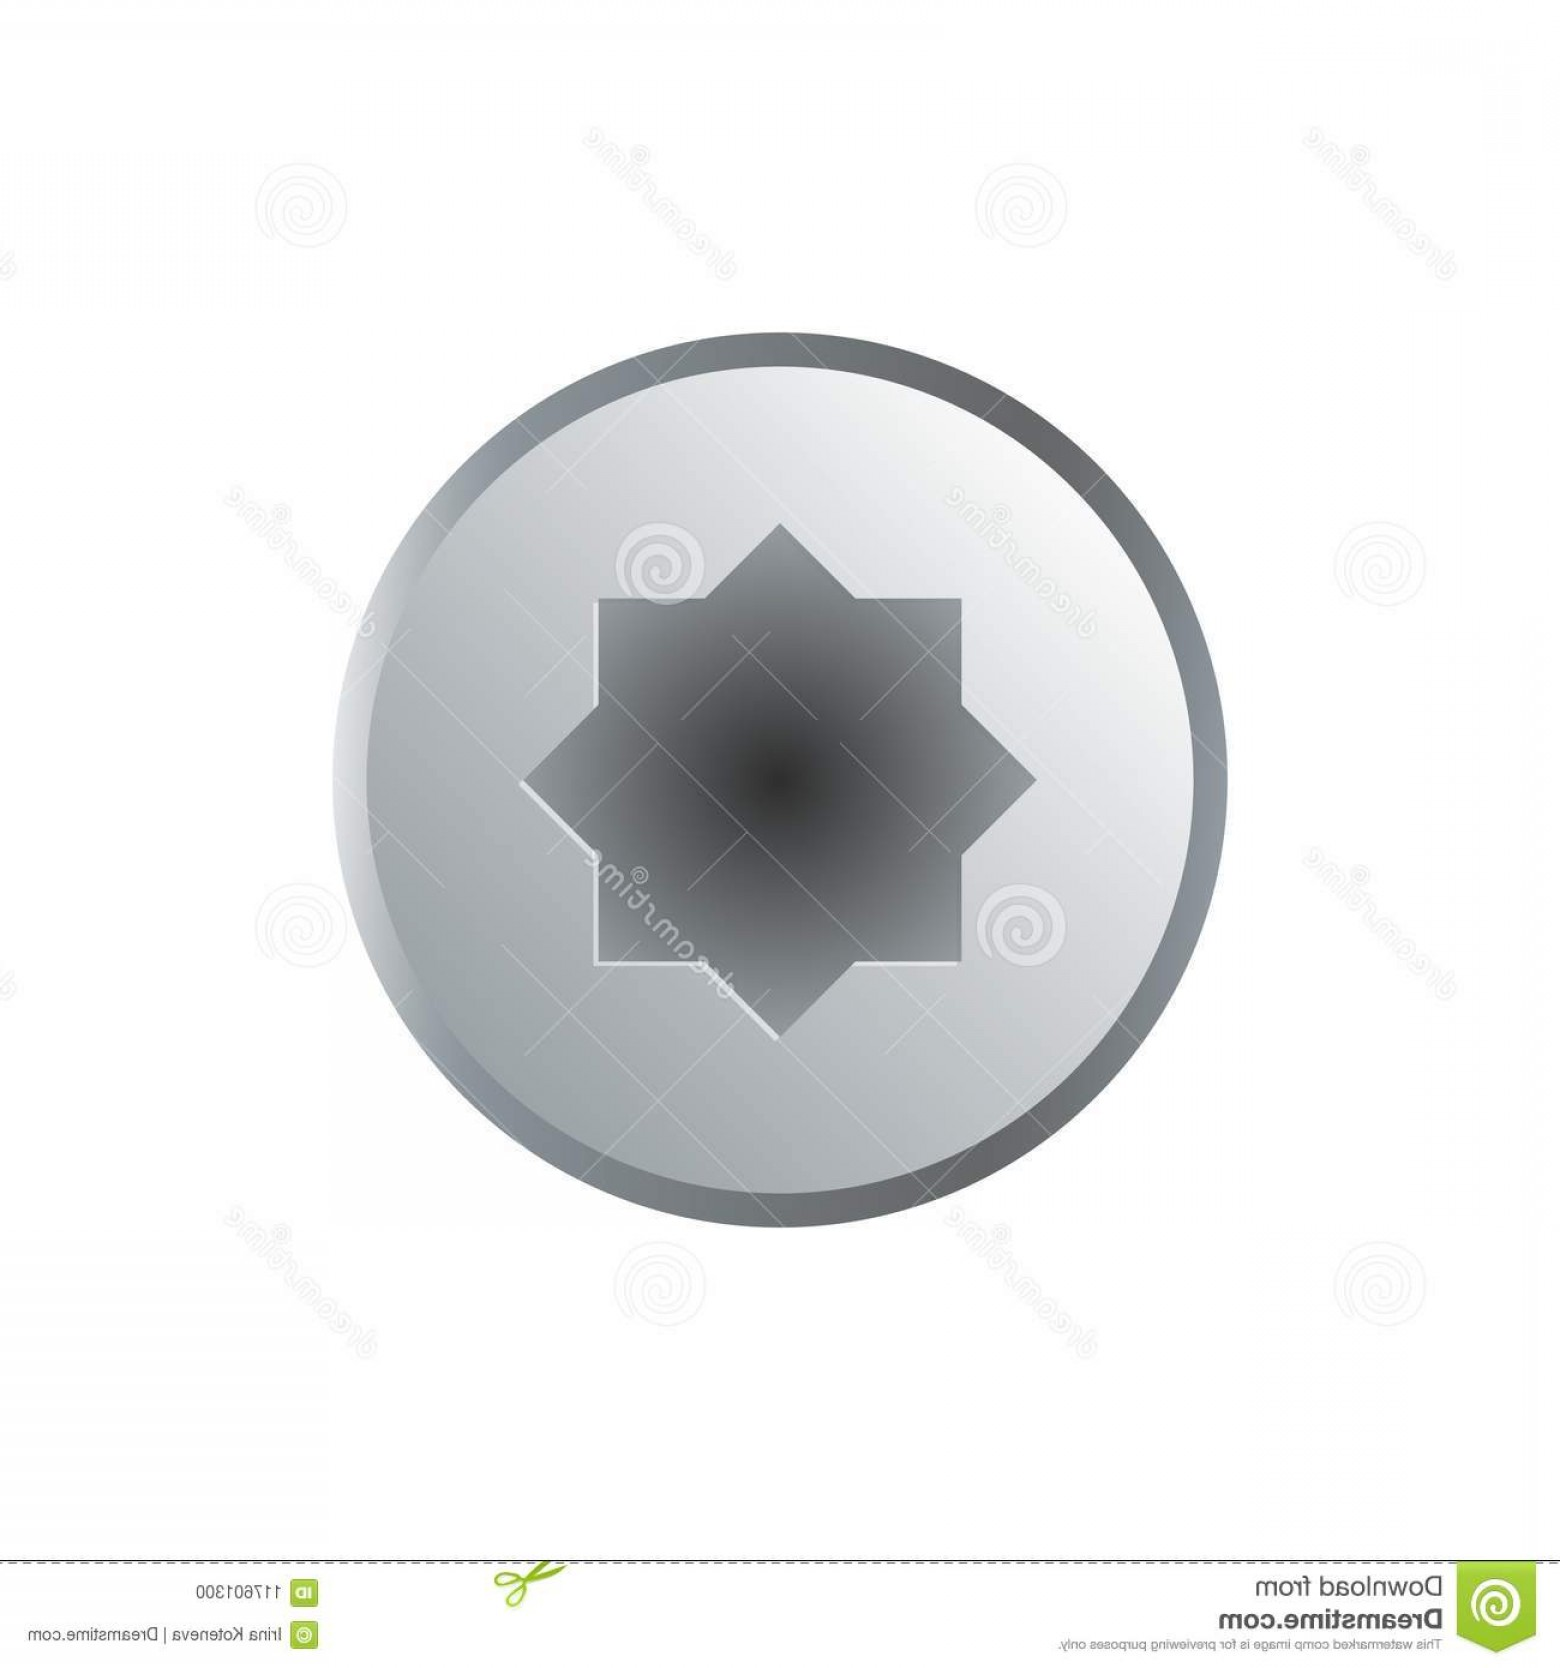 Bolt Head Vectors Gray: Realistic Socket Bolt Head Isolated White Realistic Socket Bolt Head Isolated White Background Construction Hardware Vector Image